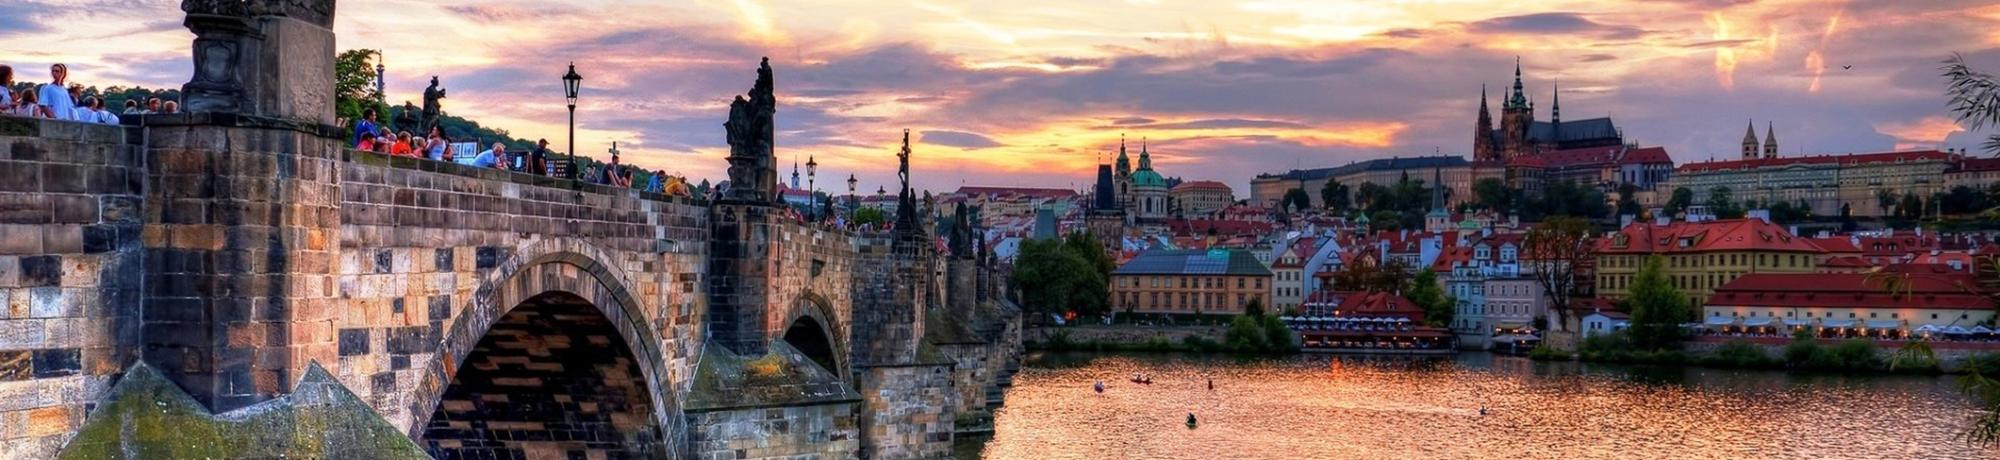 UC Davis Study Abroad, Summer Internship Abroad Czech Republic, Business and Communication Program, Header Image